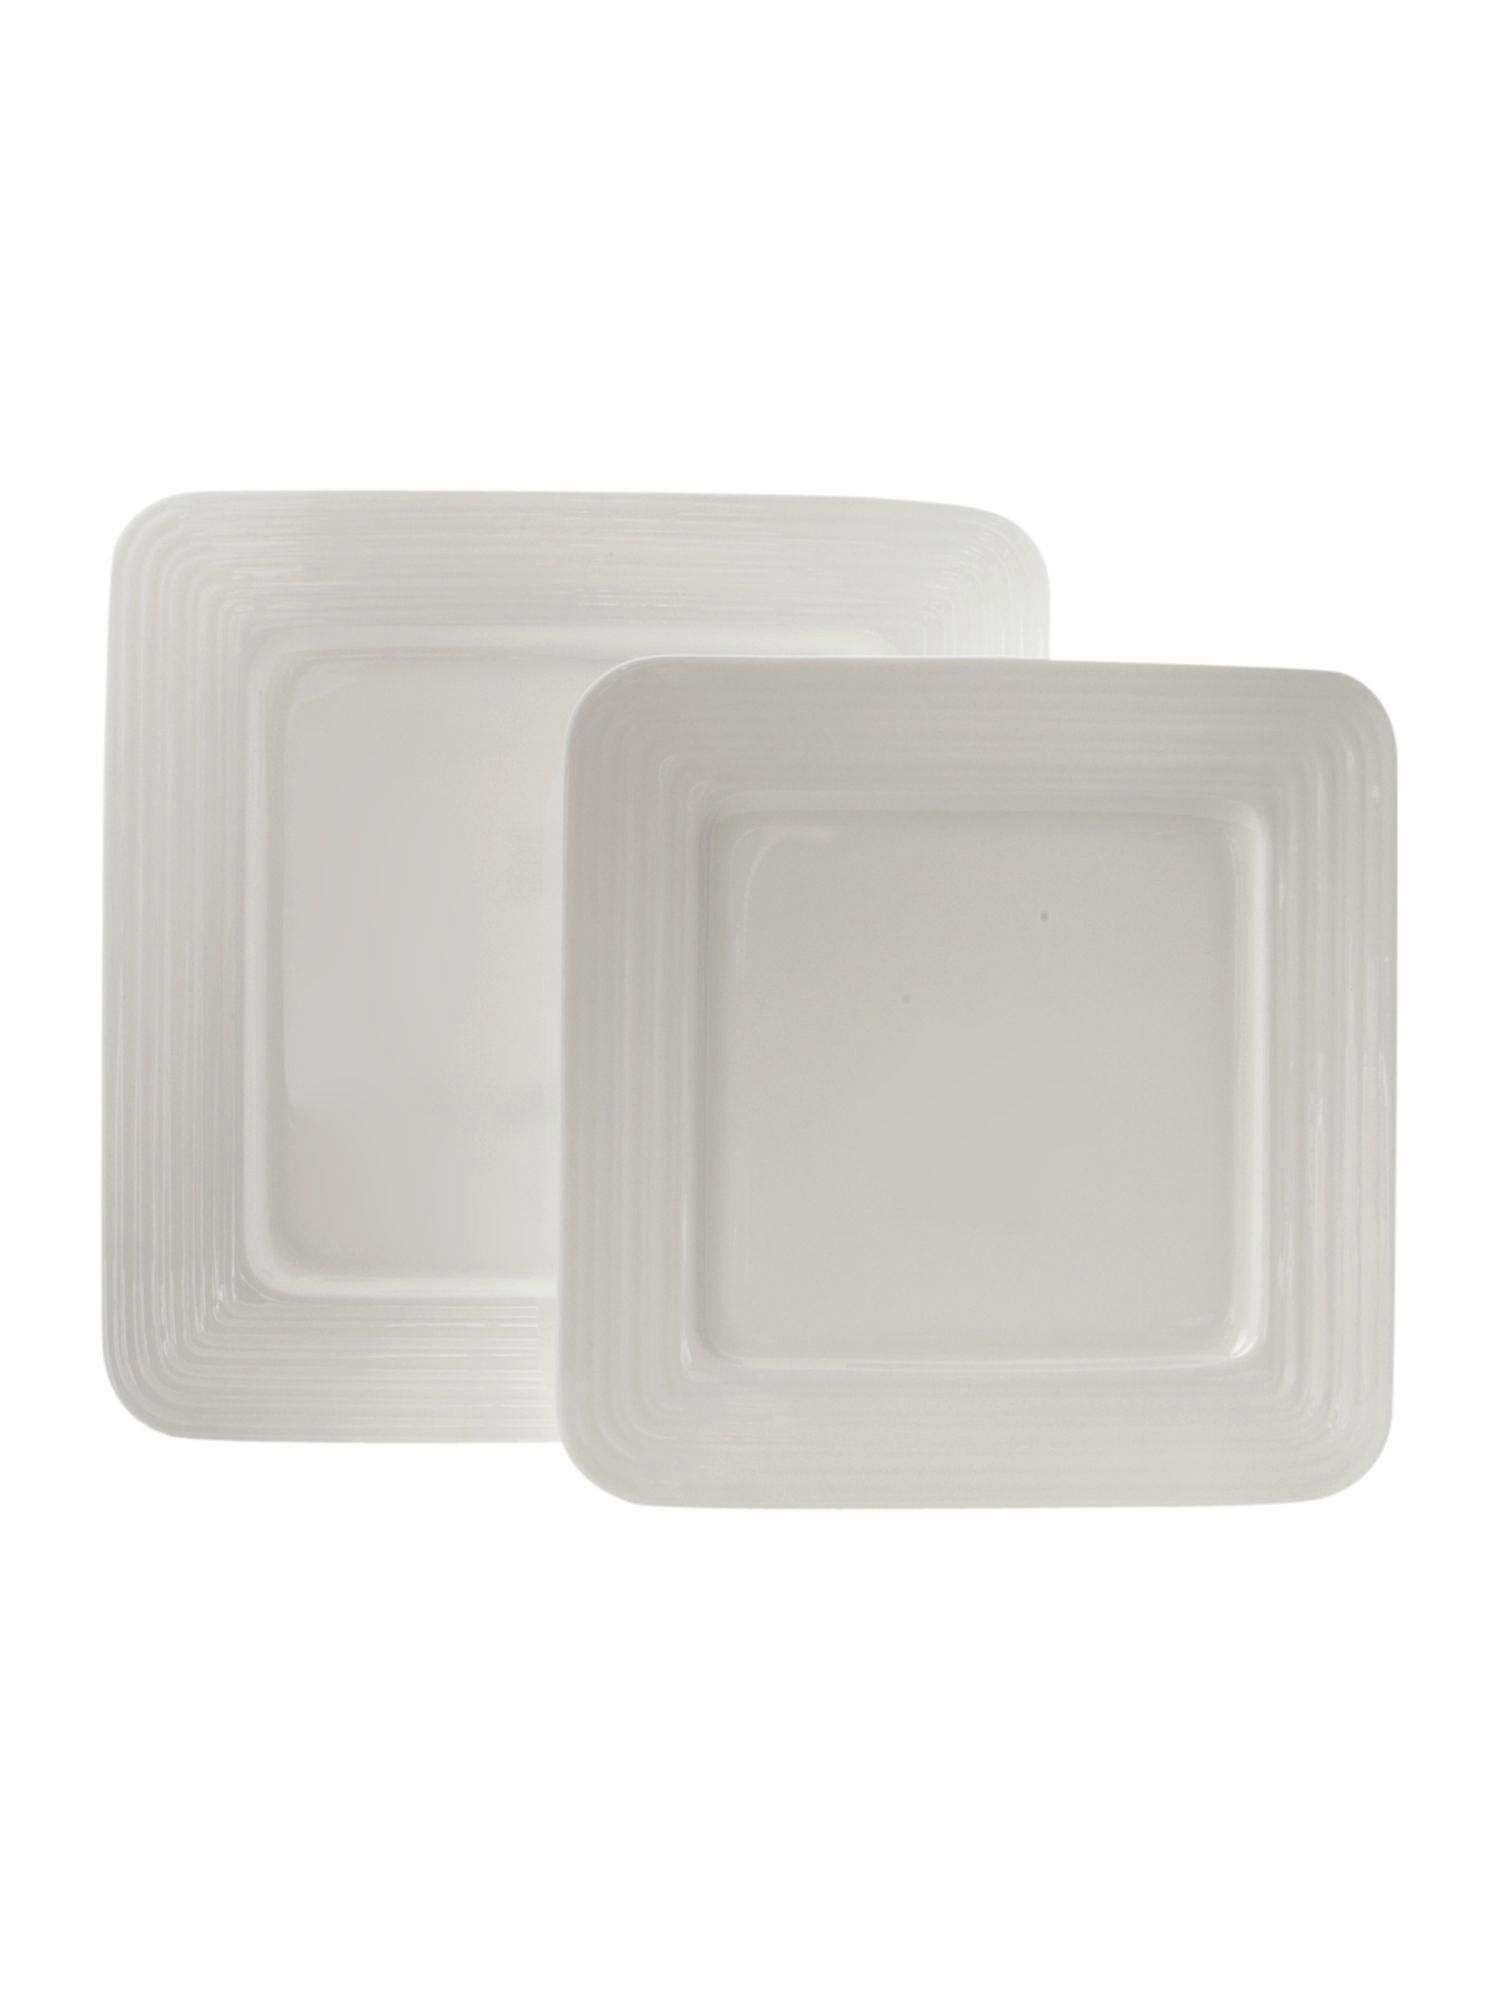 Soho Square dinnerware